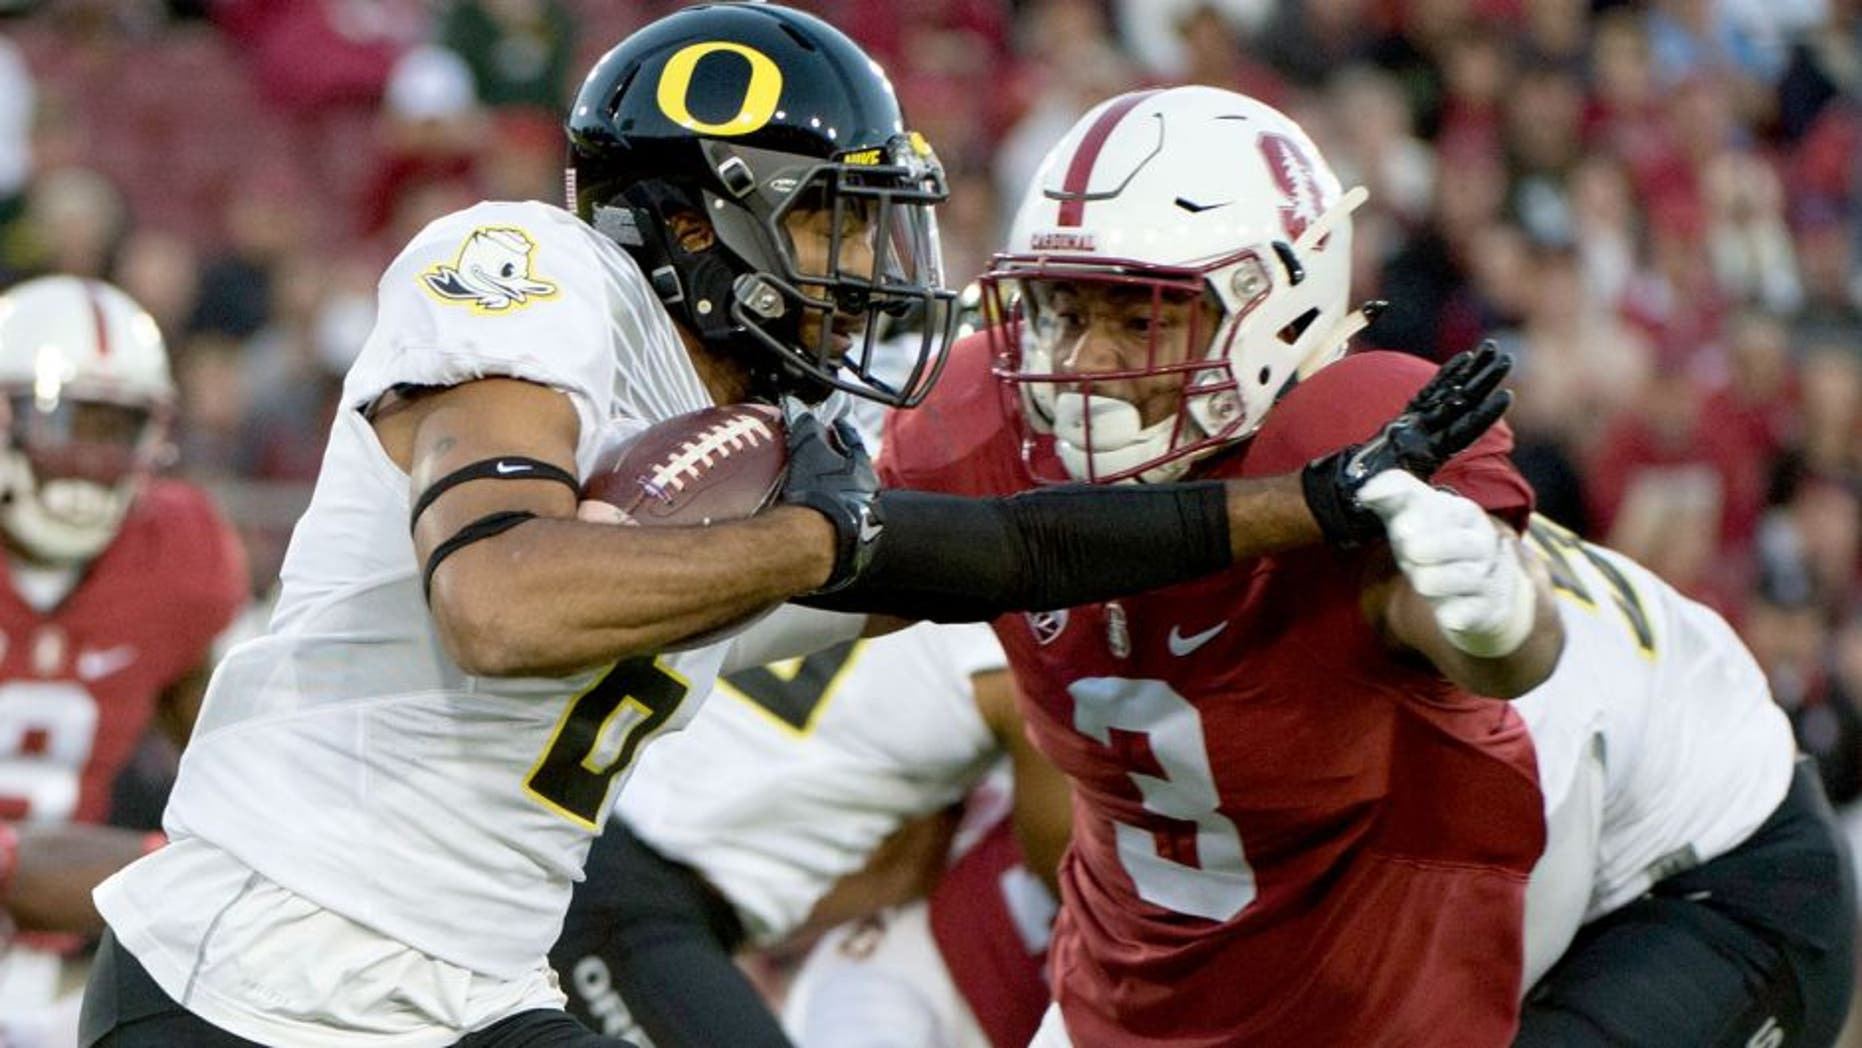 November 14, 2015; Stanford, CA, USA; Oregon Ducks wide receiver Charles Nelson (6) runs with the football against Stanford Cardinal linebacker Noor Davis (3) during the first quarter at Stanford Stadium. Mandatory Credit: Kyle Terada-USA TODAY Sports